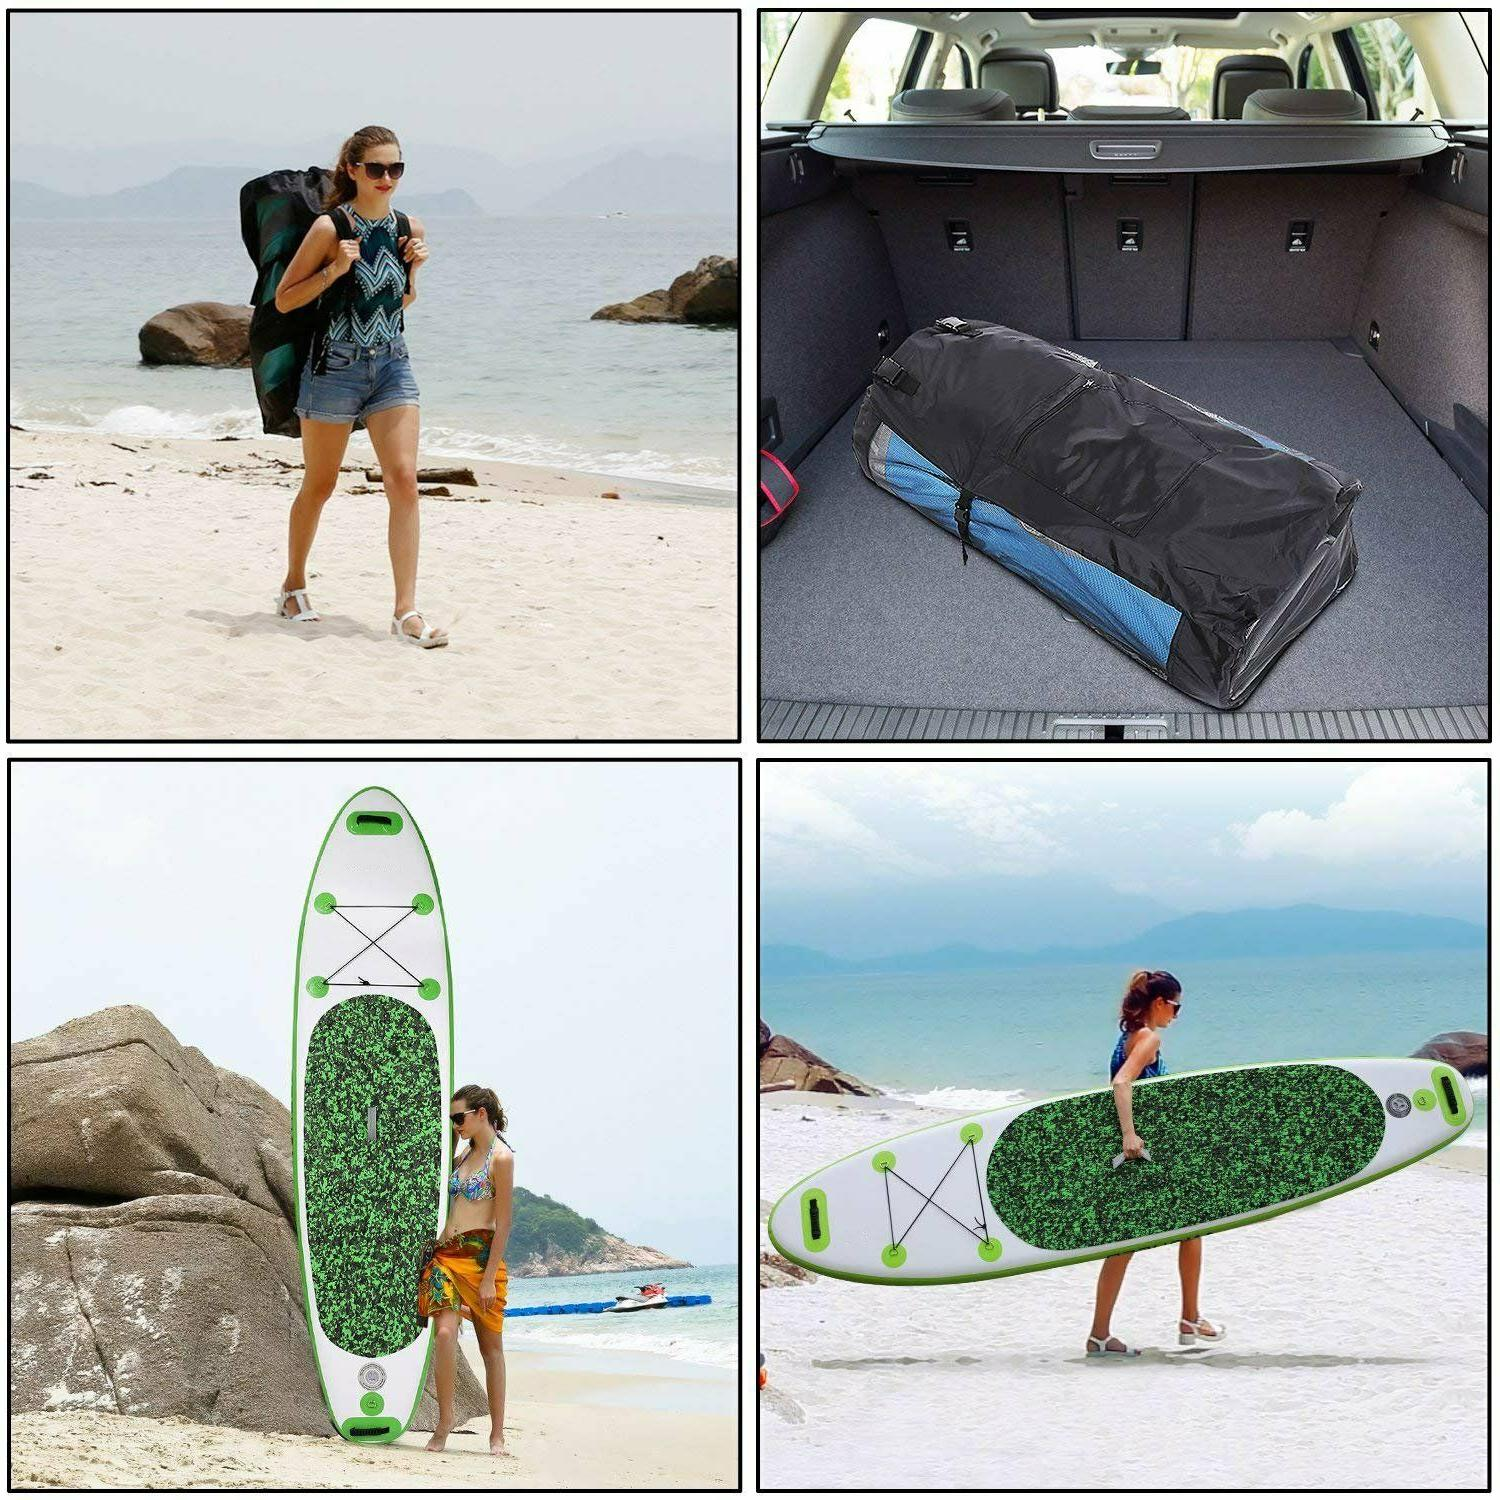 ANCHEER Inflatable Up Paddle Board, Paddle, Pump